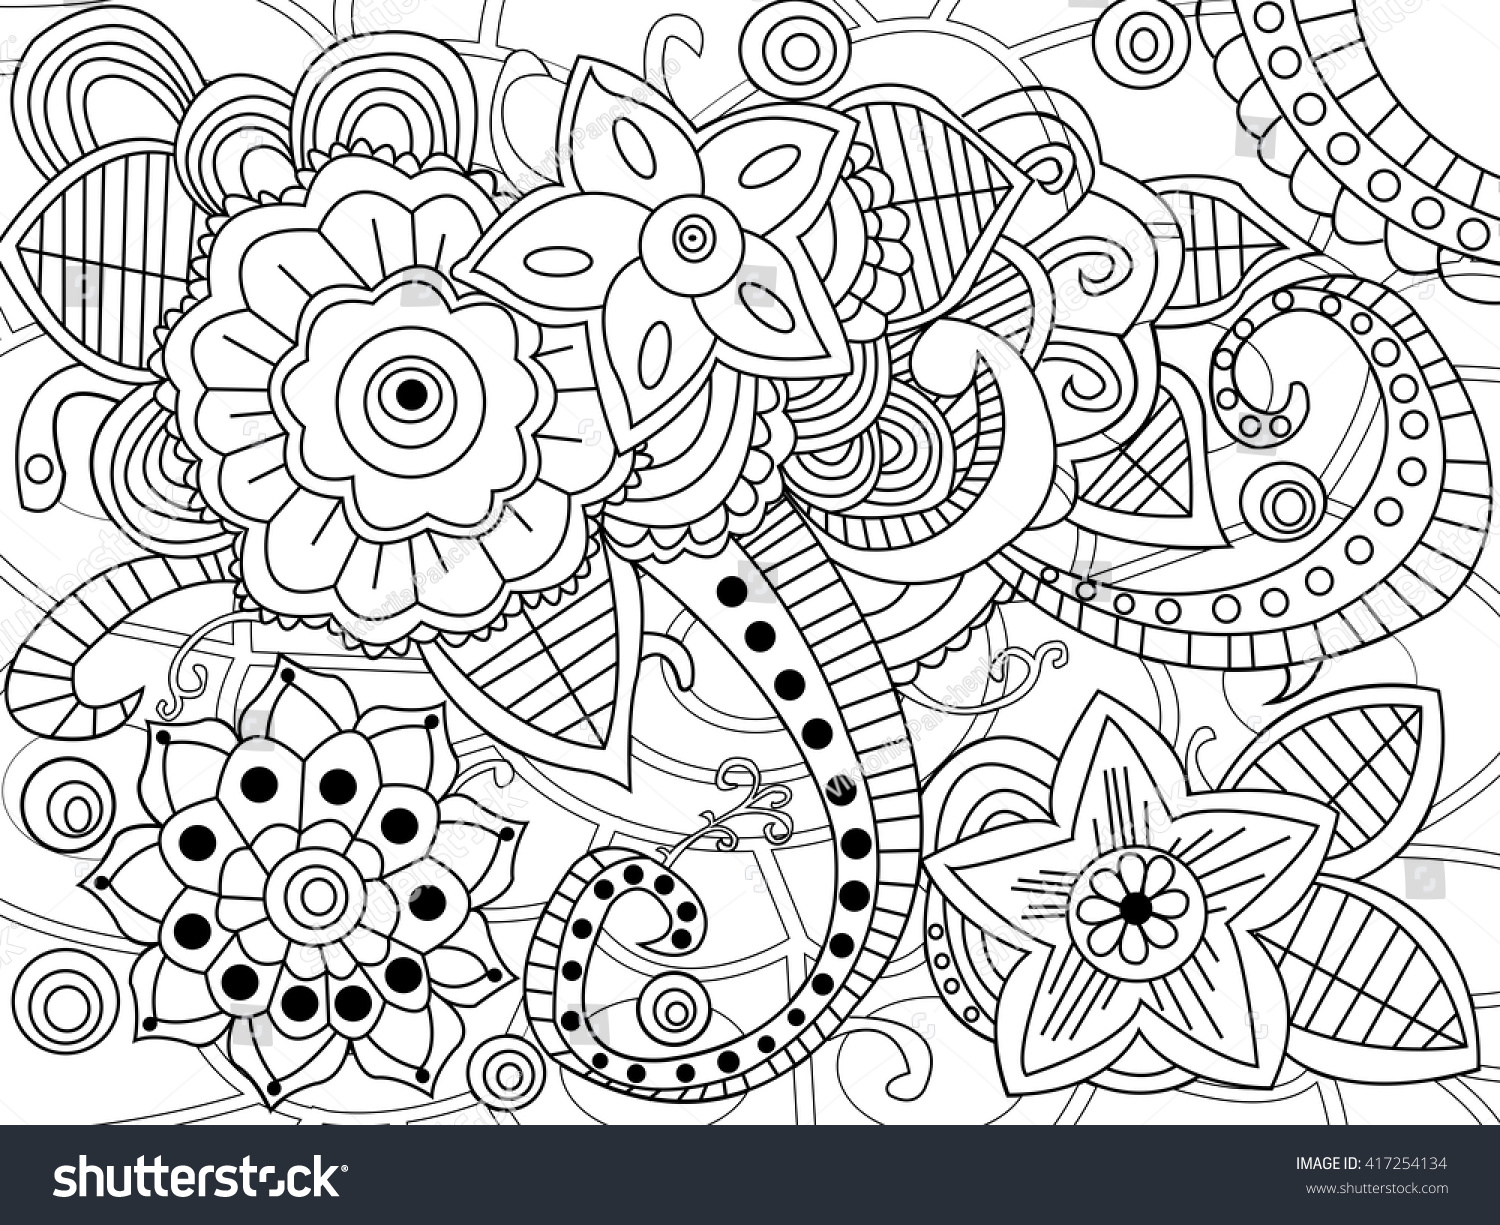 Mandala Coloring Book Adults Vector Illustration Stock Vector ...